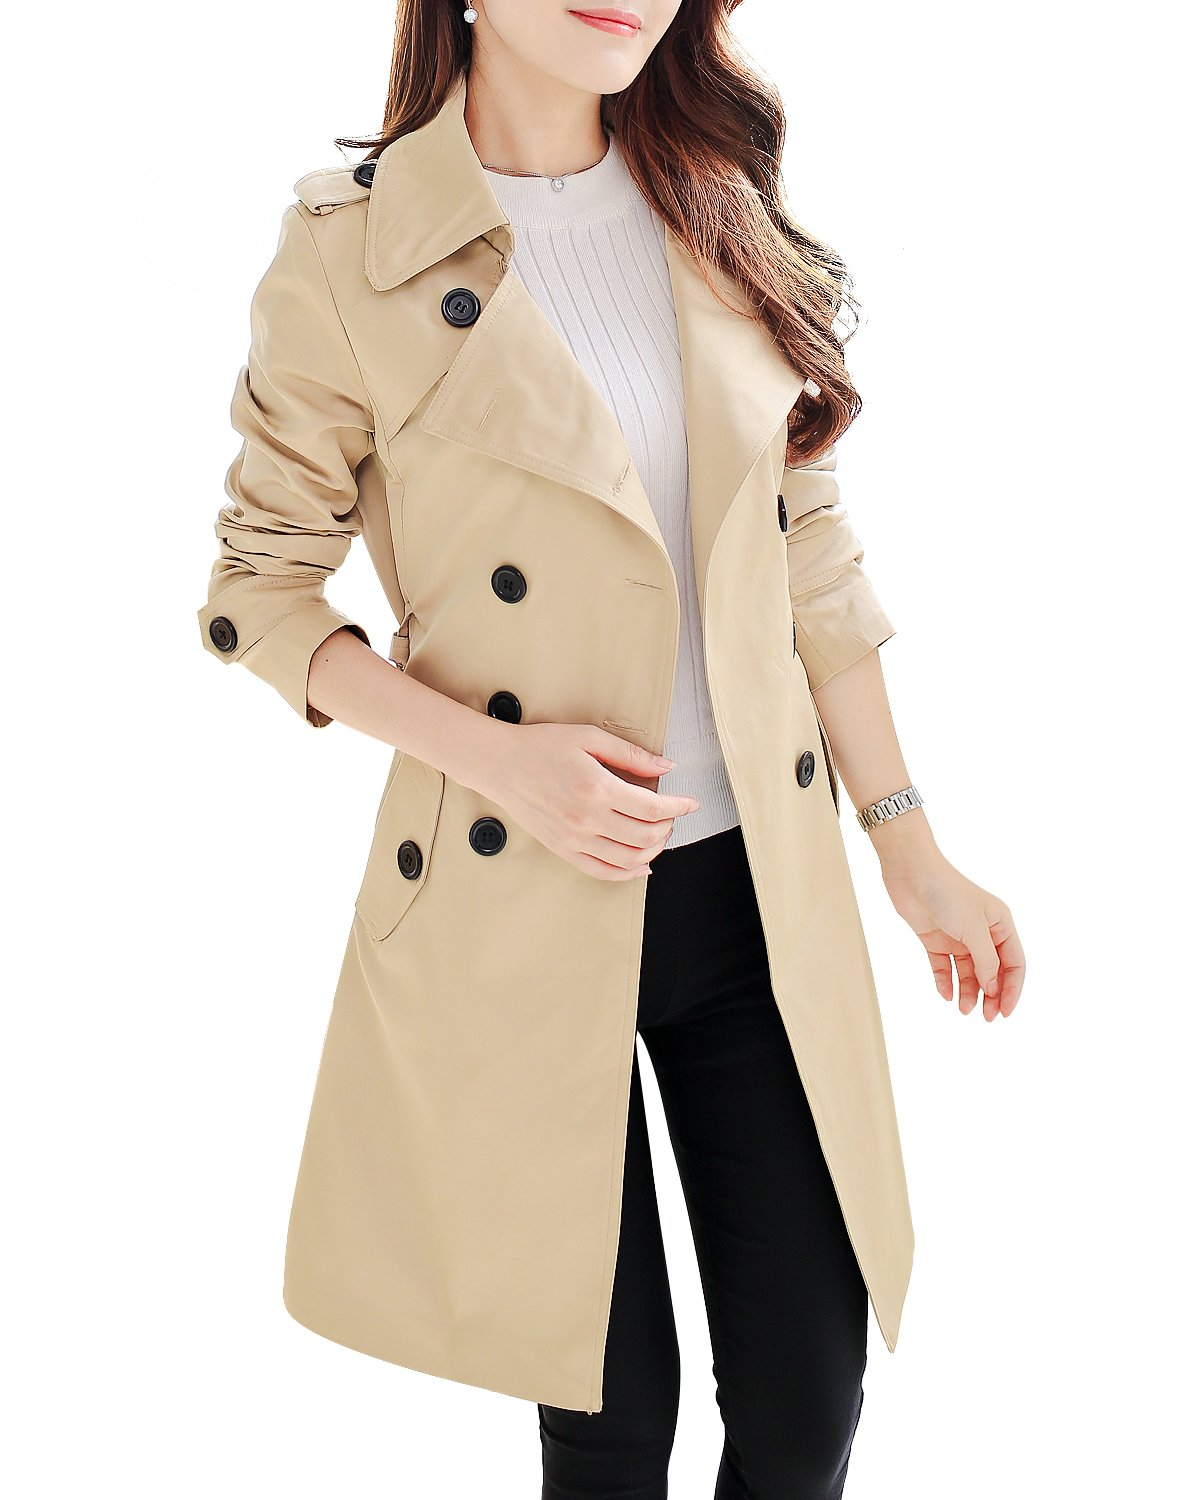 NANJUN Women's Double Breasted Trench Coat Chelsea Tailoring Overcoat (Khaki 6) by NANJUN